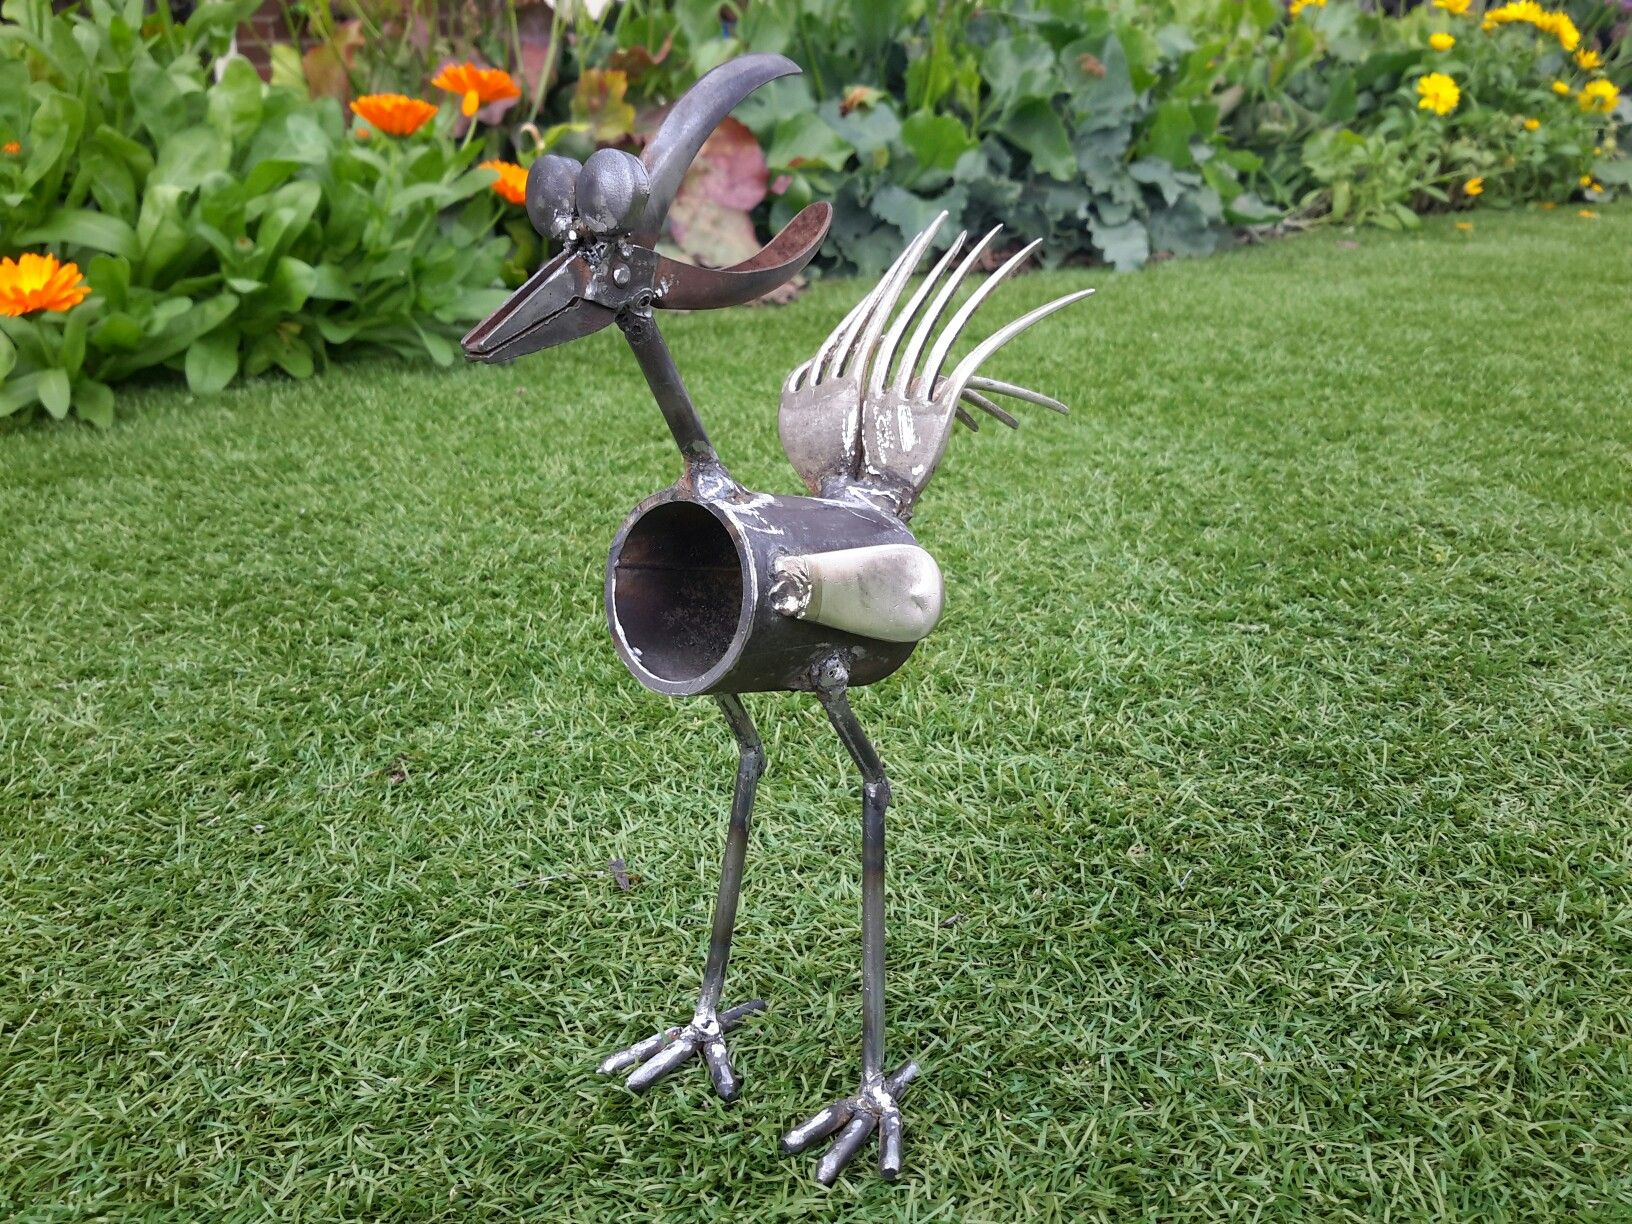 Welded backyard art welding projects pinterest for Yard art ideas